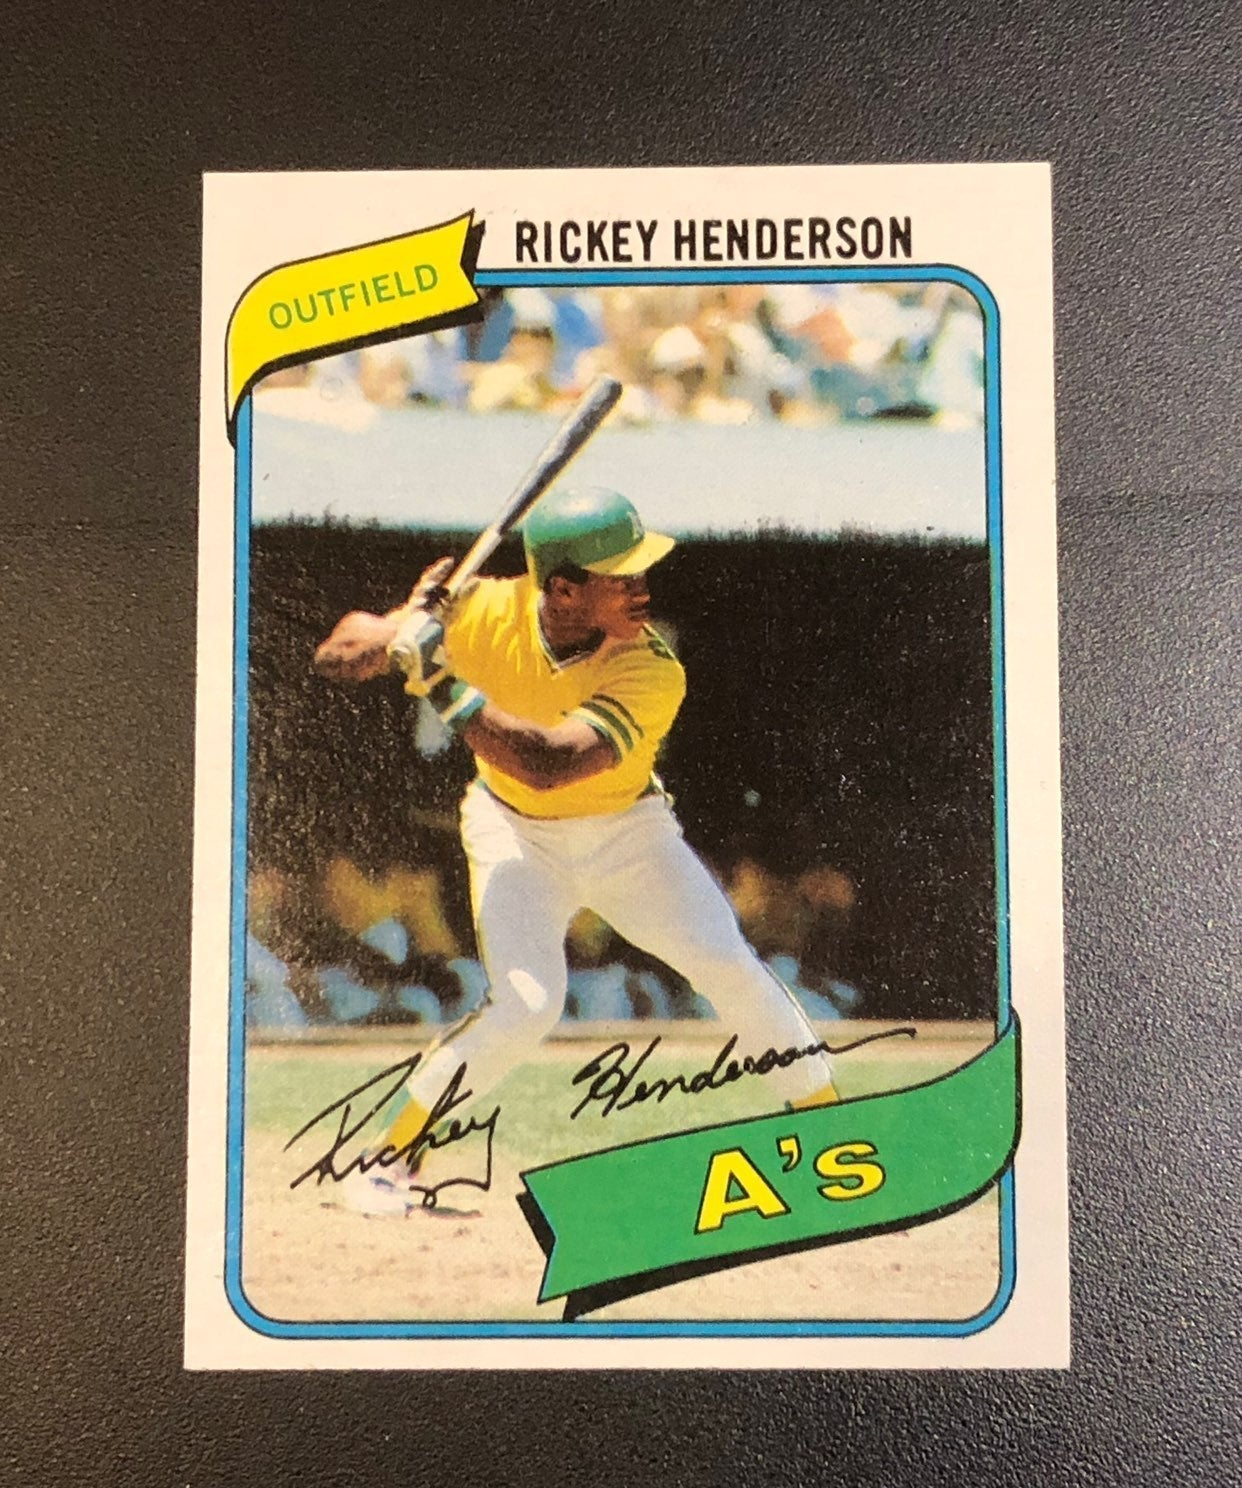 1980 Topps Rickey Hdnderson RC Mint!